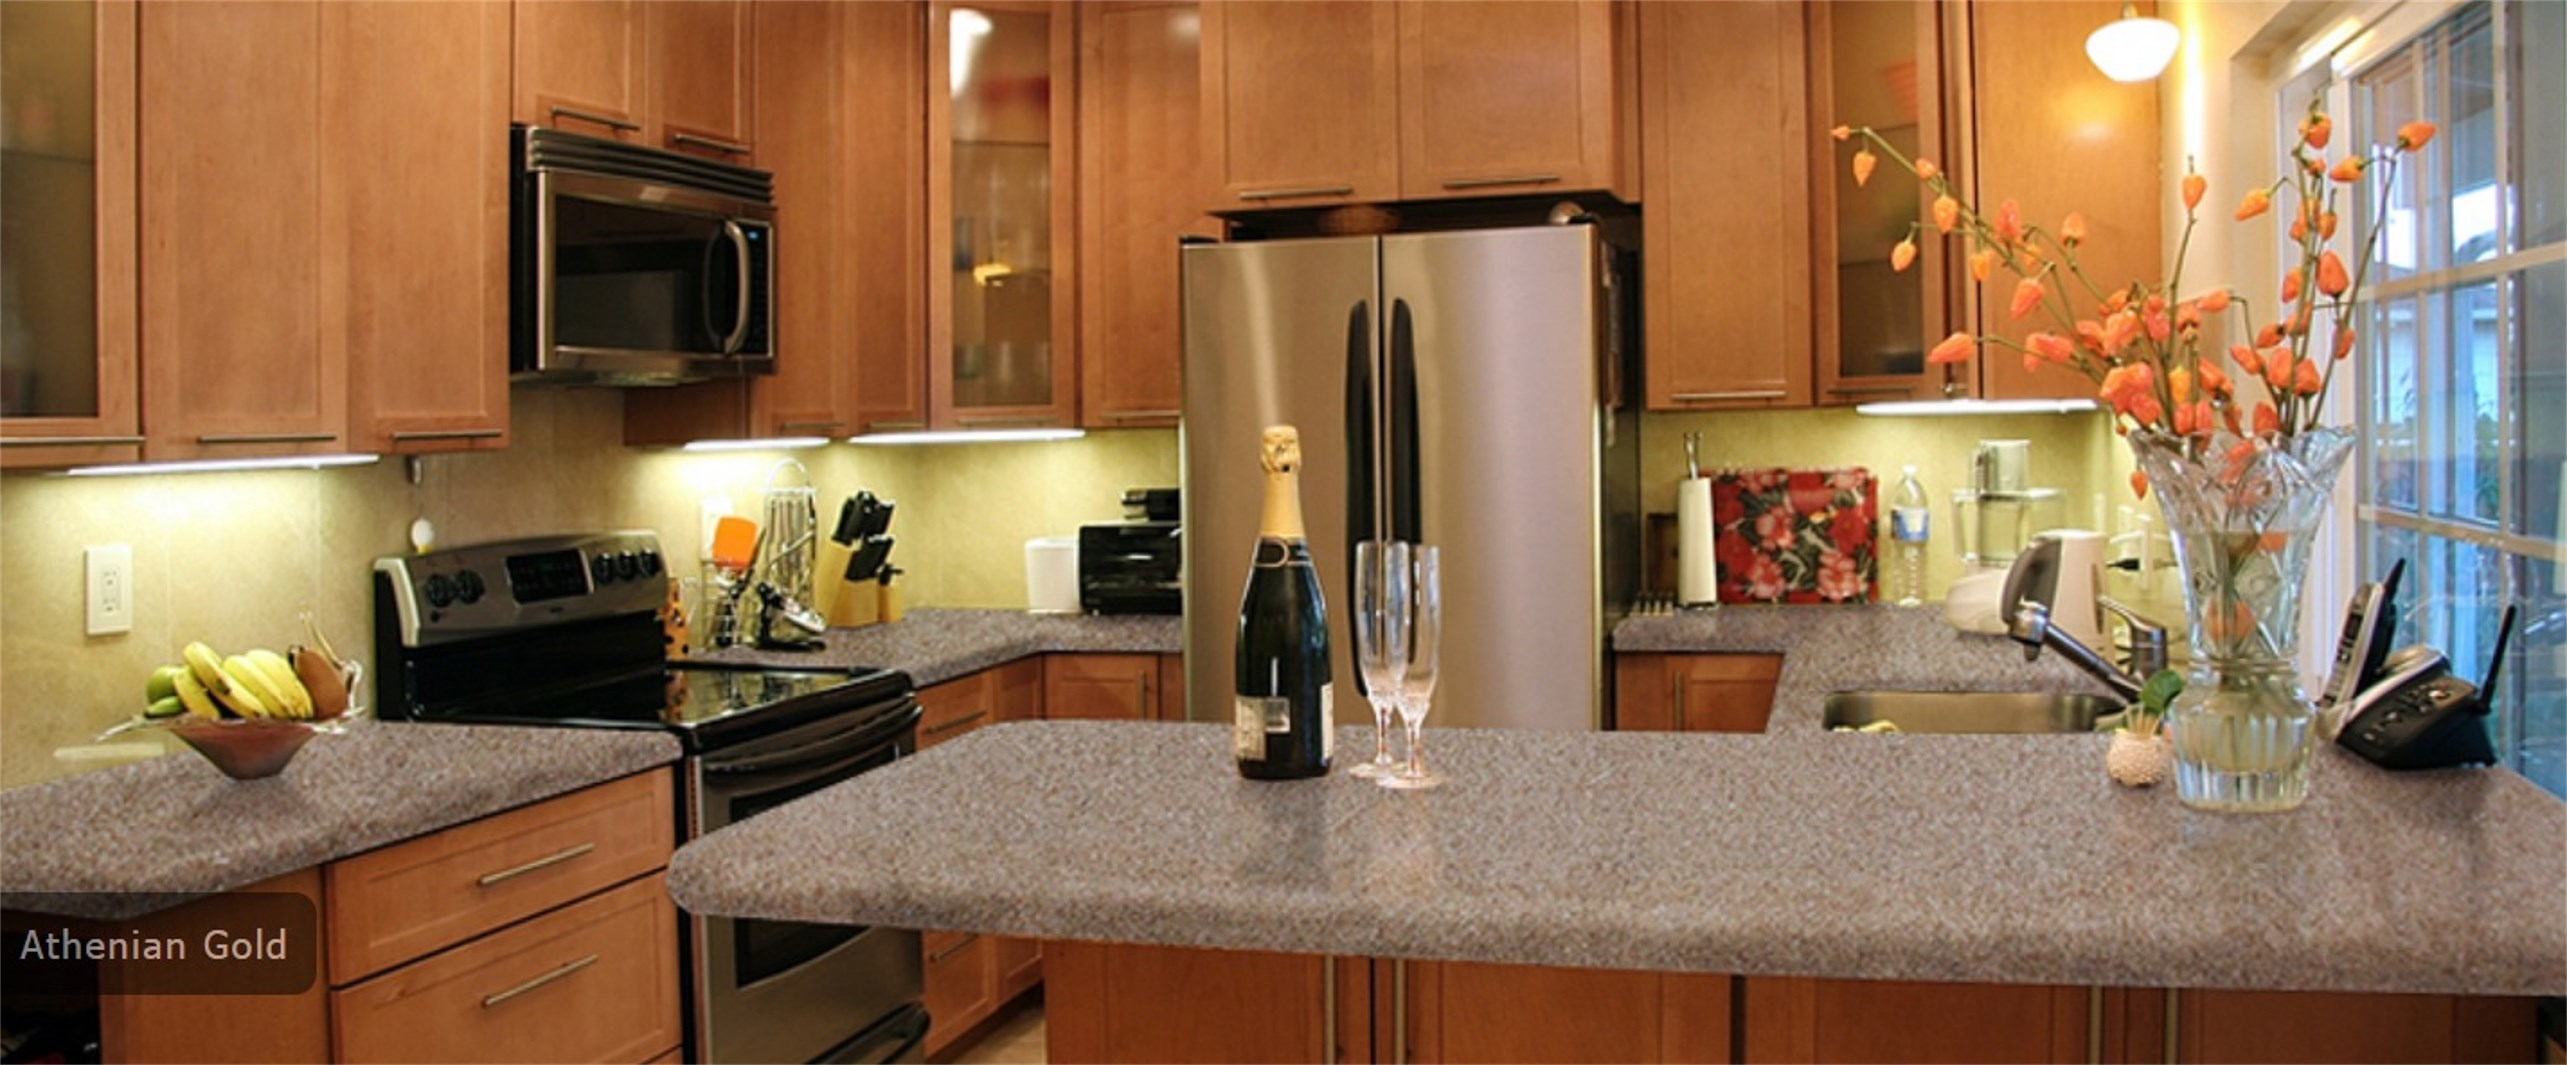 The History of Quartz Countertops